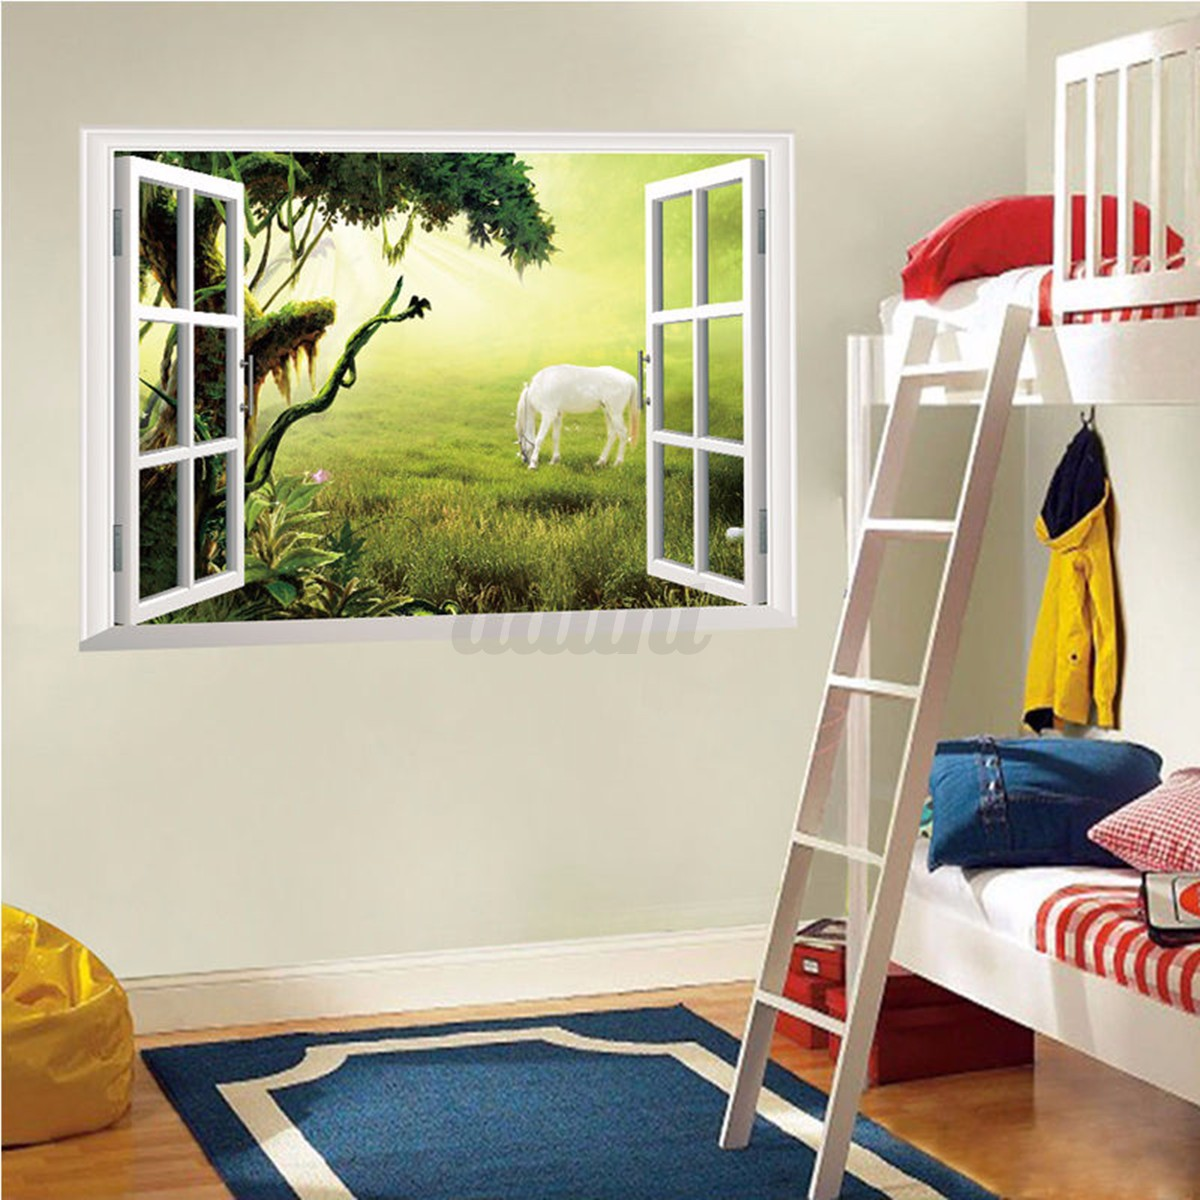 3d wall stickers ebay 3d view super mario games art kids room wall stickers ebay canada 3d removable animals window view wall sticker decals